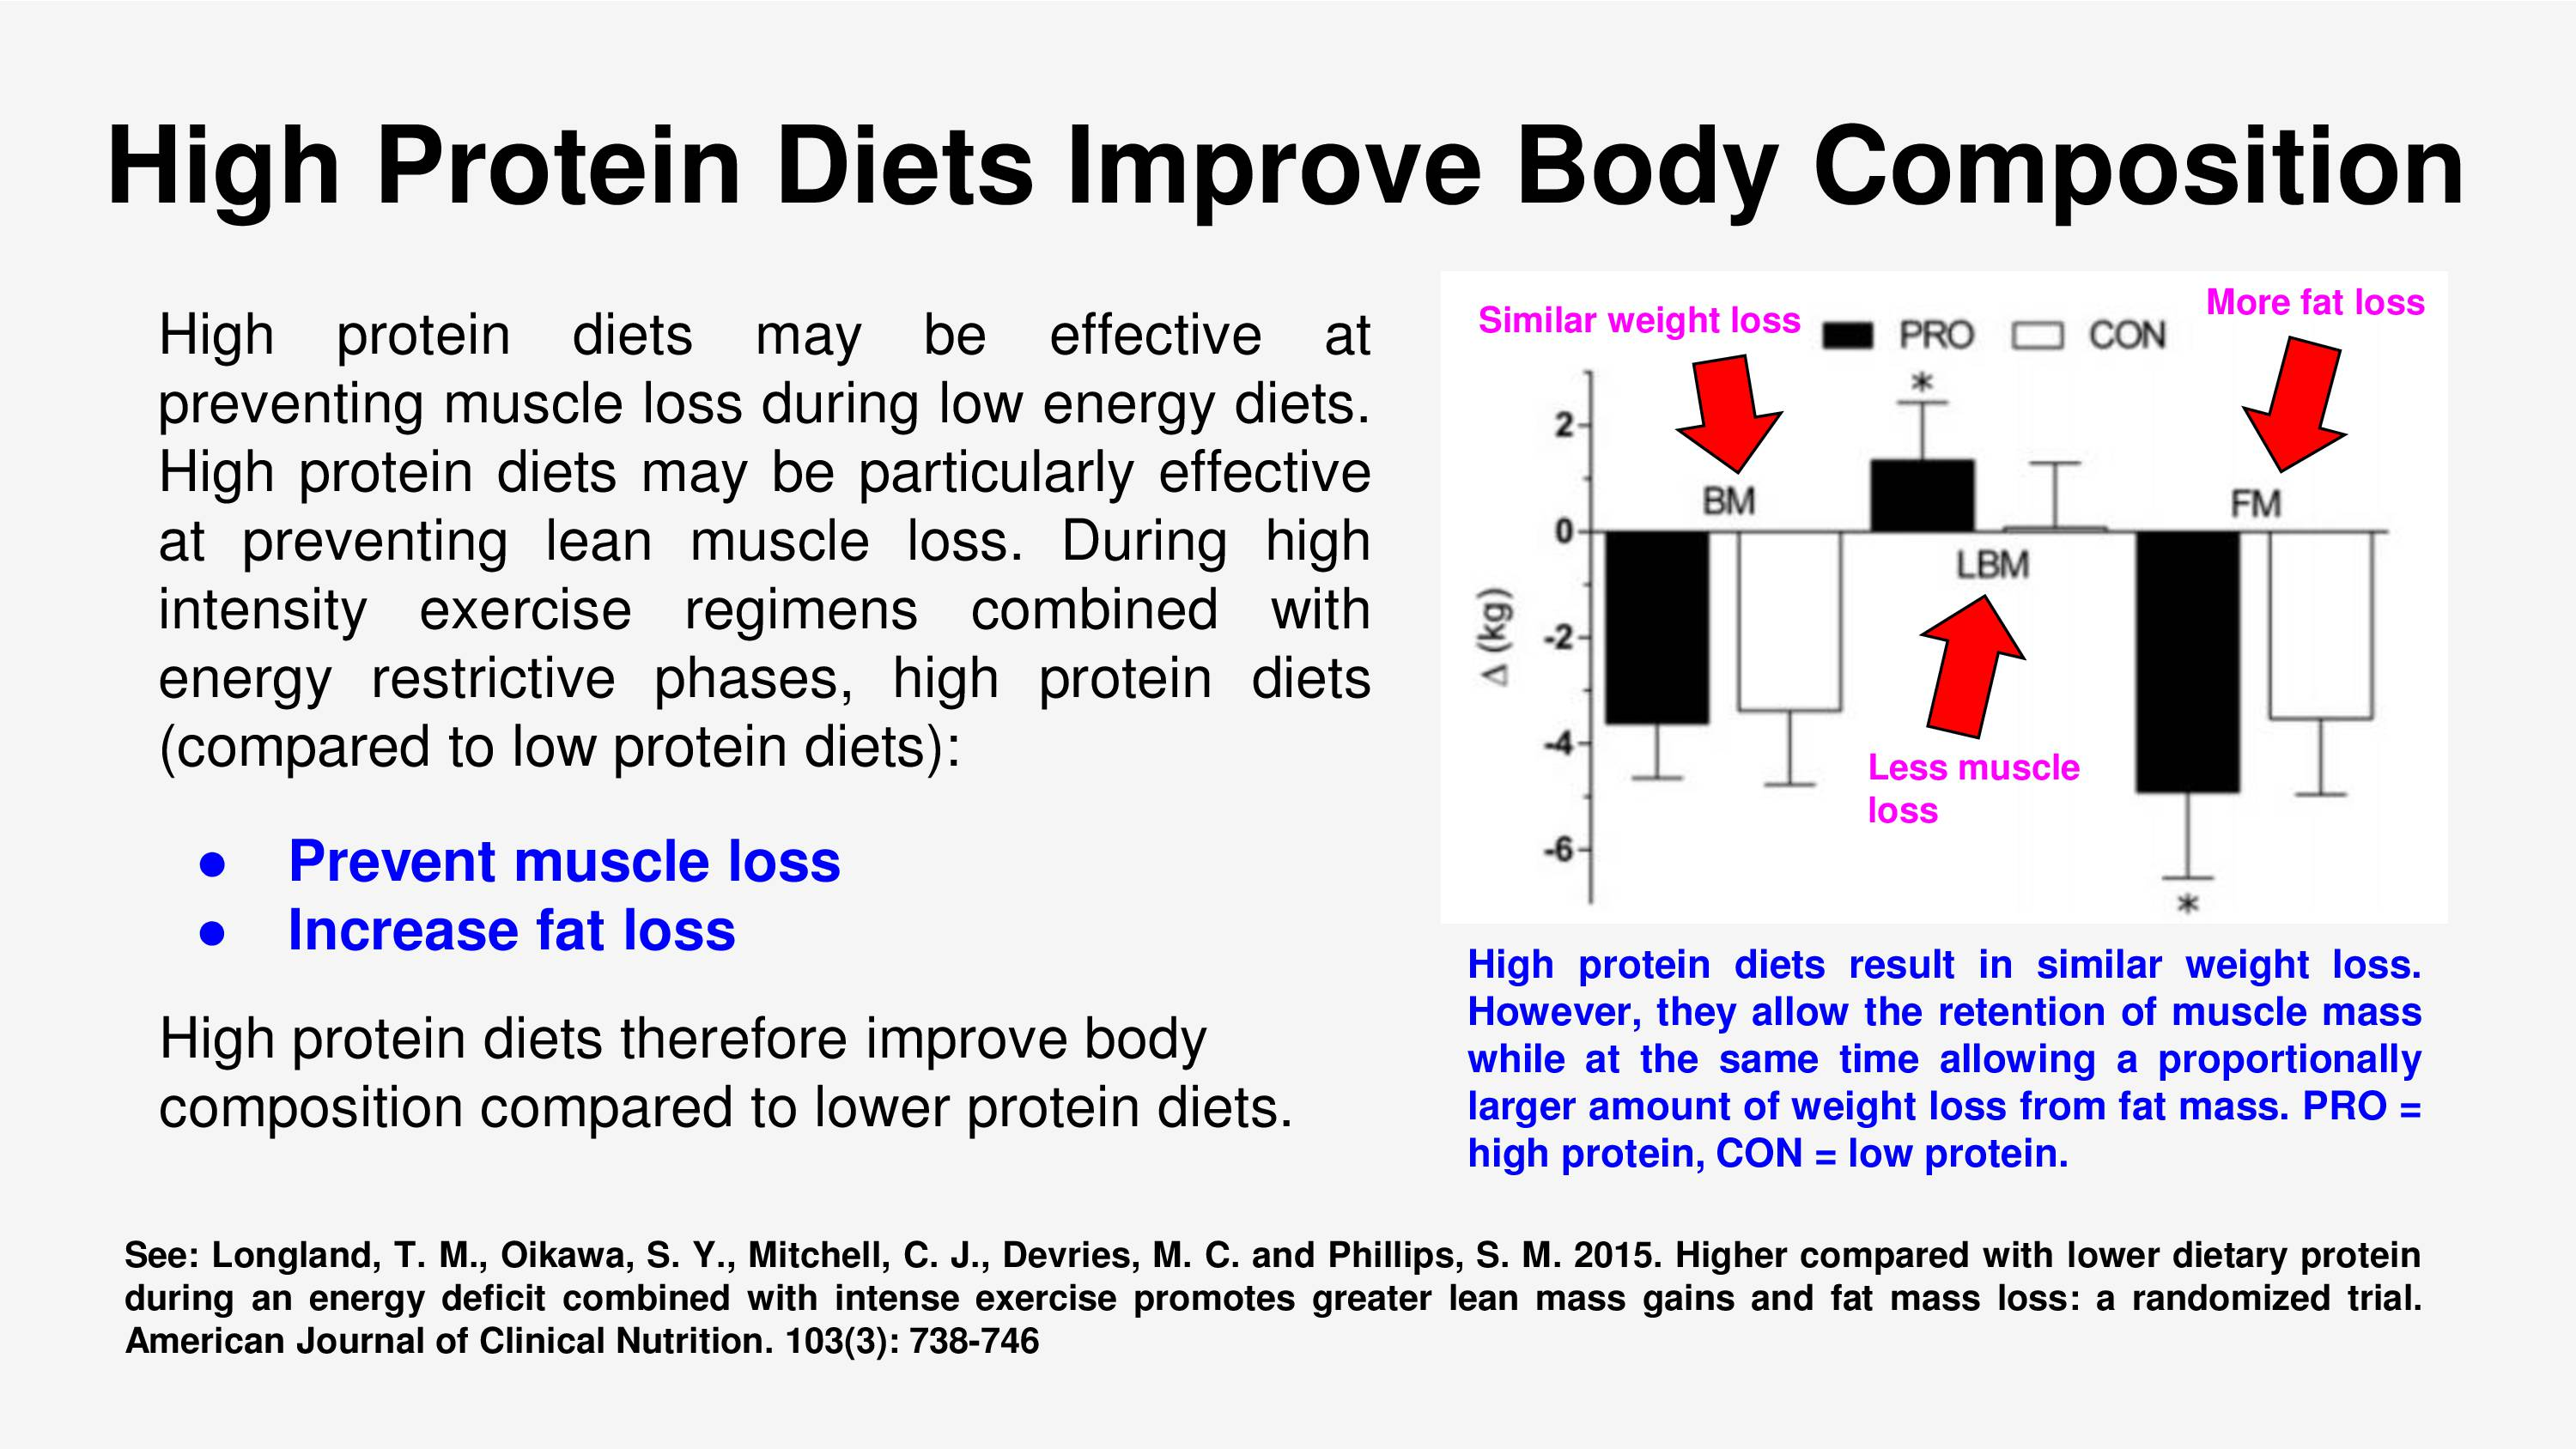 High Protein Diets Improve Body Composition